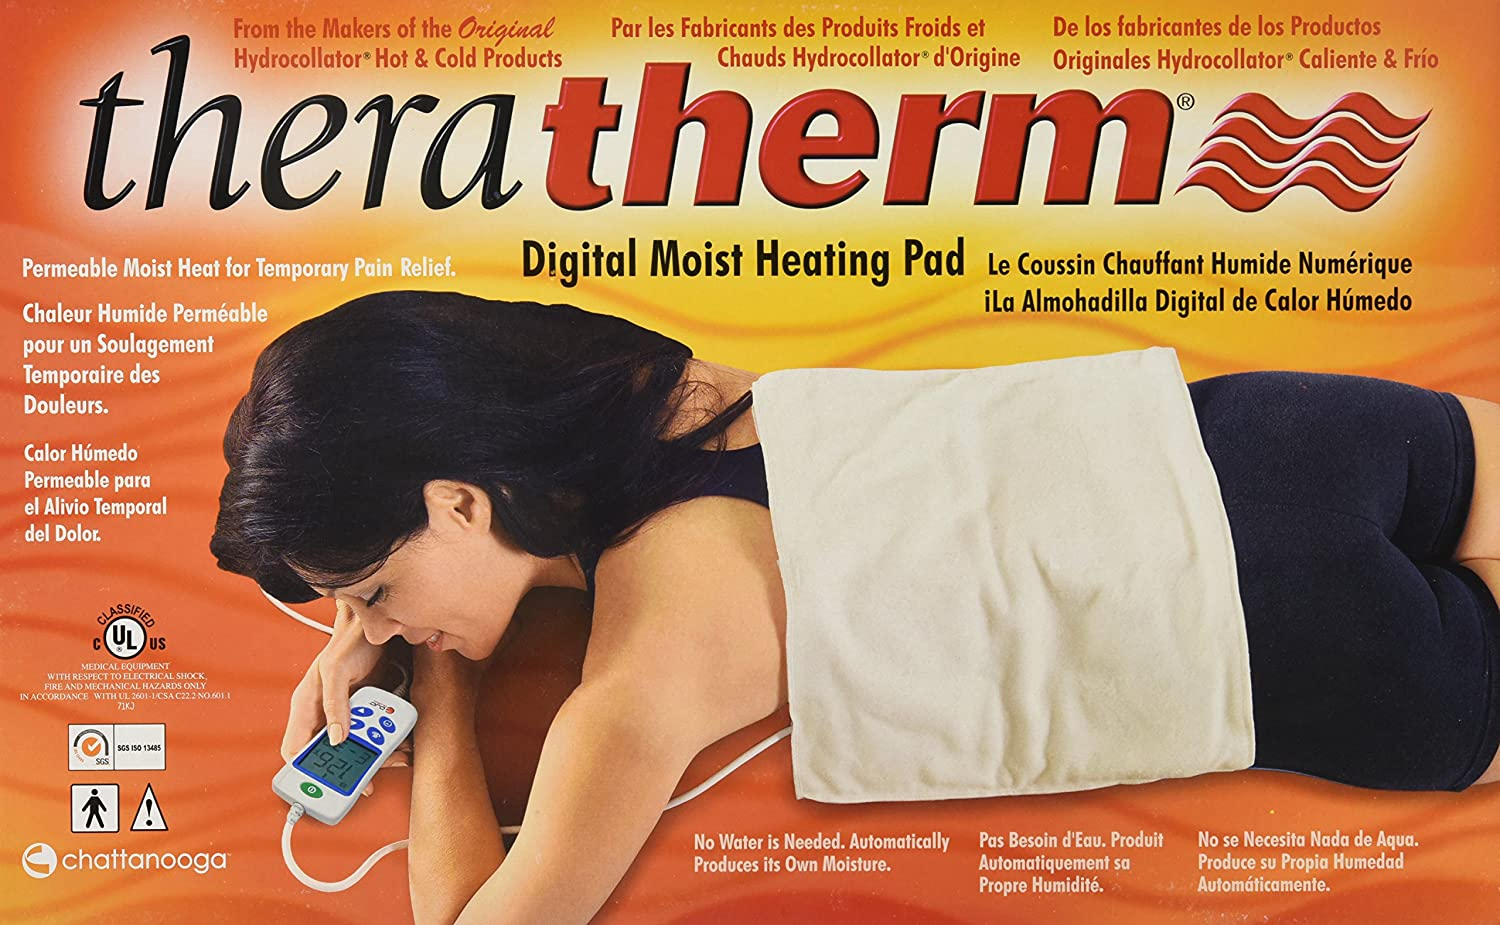 91Gj E6Ku0L._SL1500_ amazon com chattanooga theratherm digital moist heating pad chattanooga m 4 hydrocollator wiring diagram at readyjetset.co